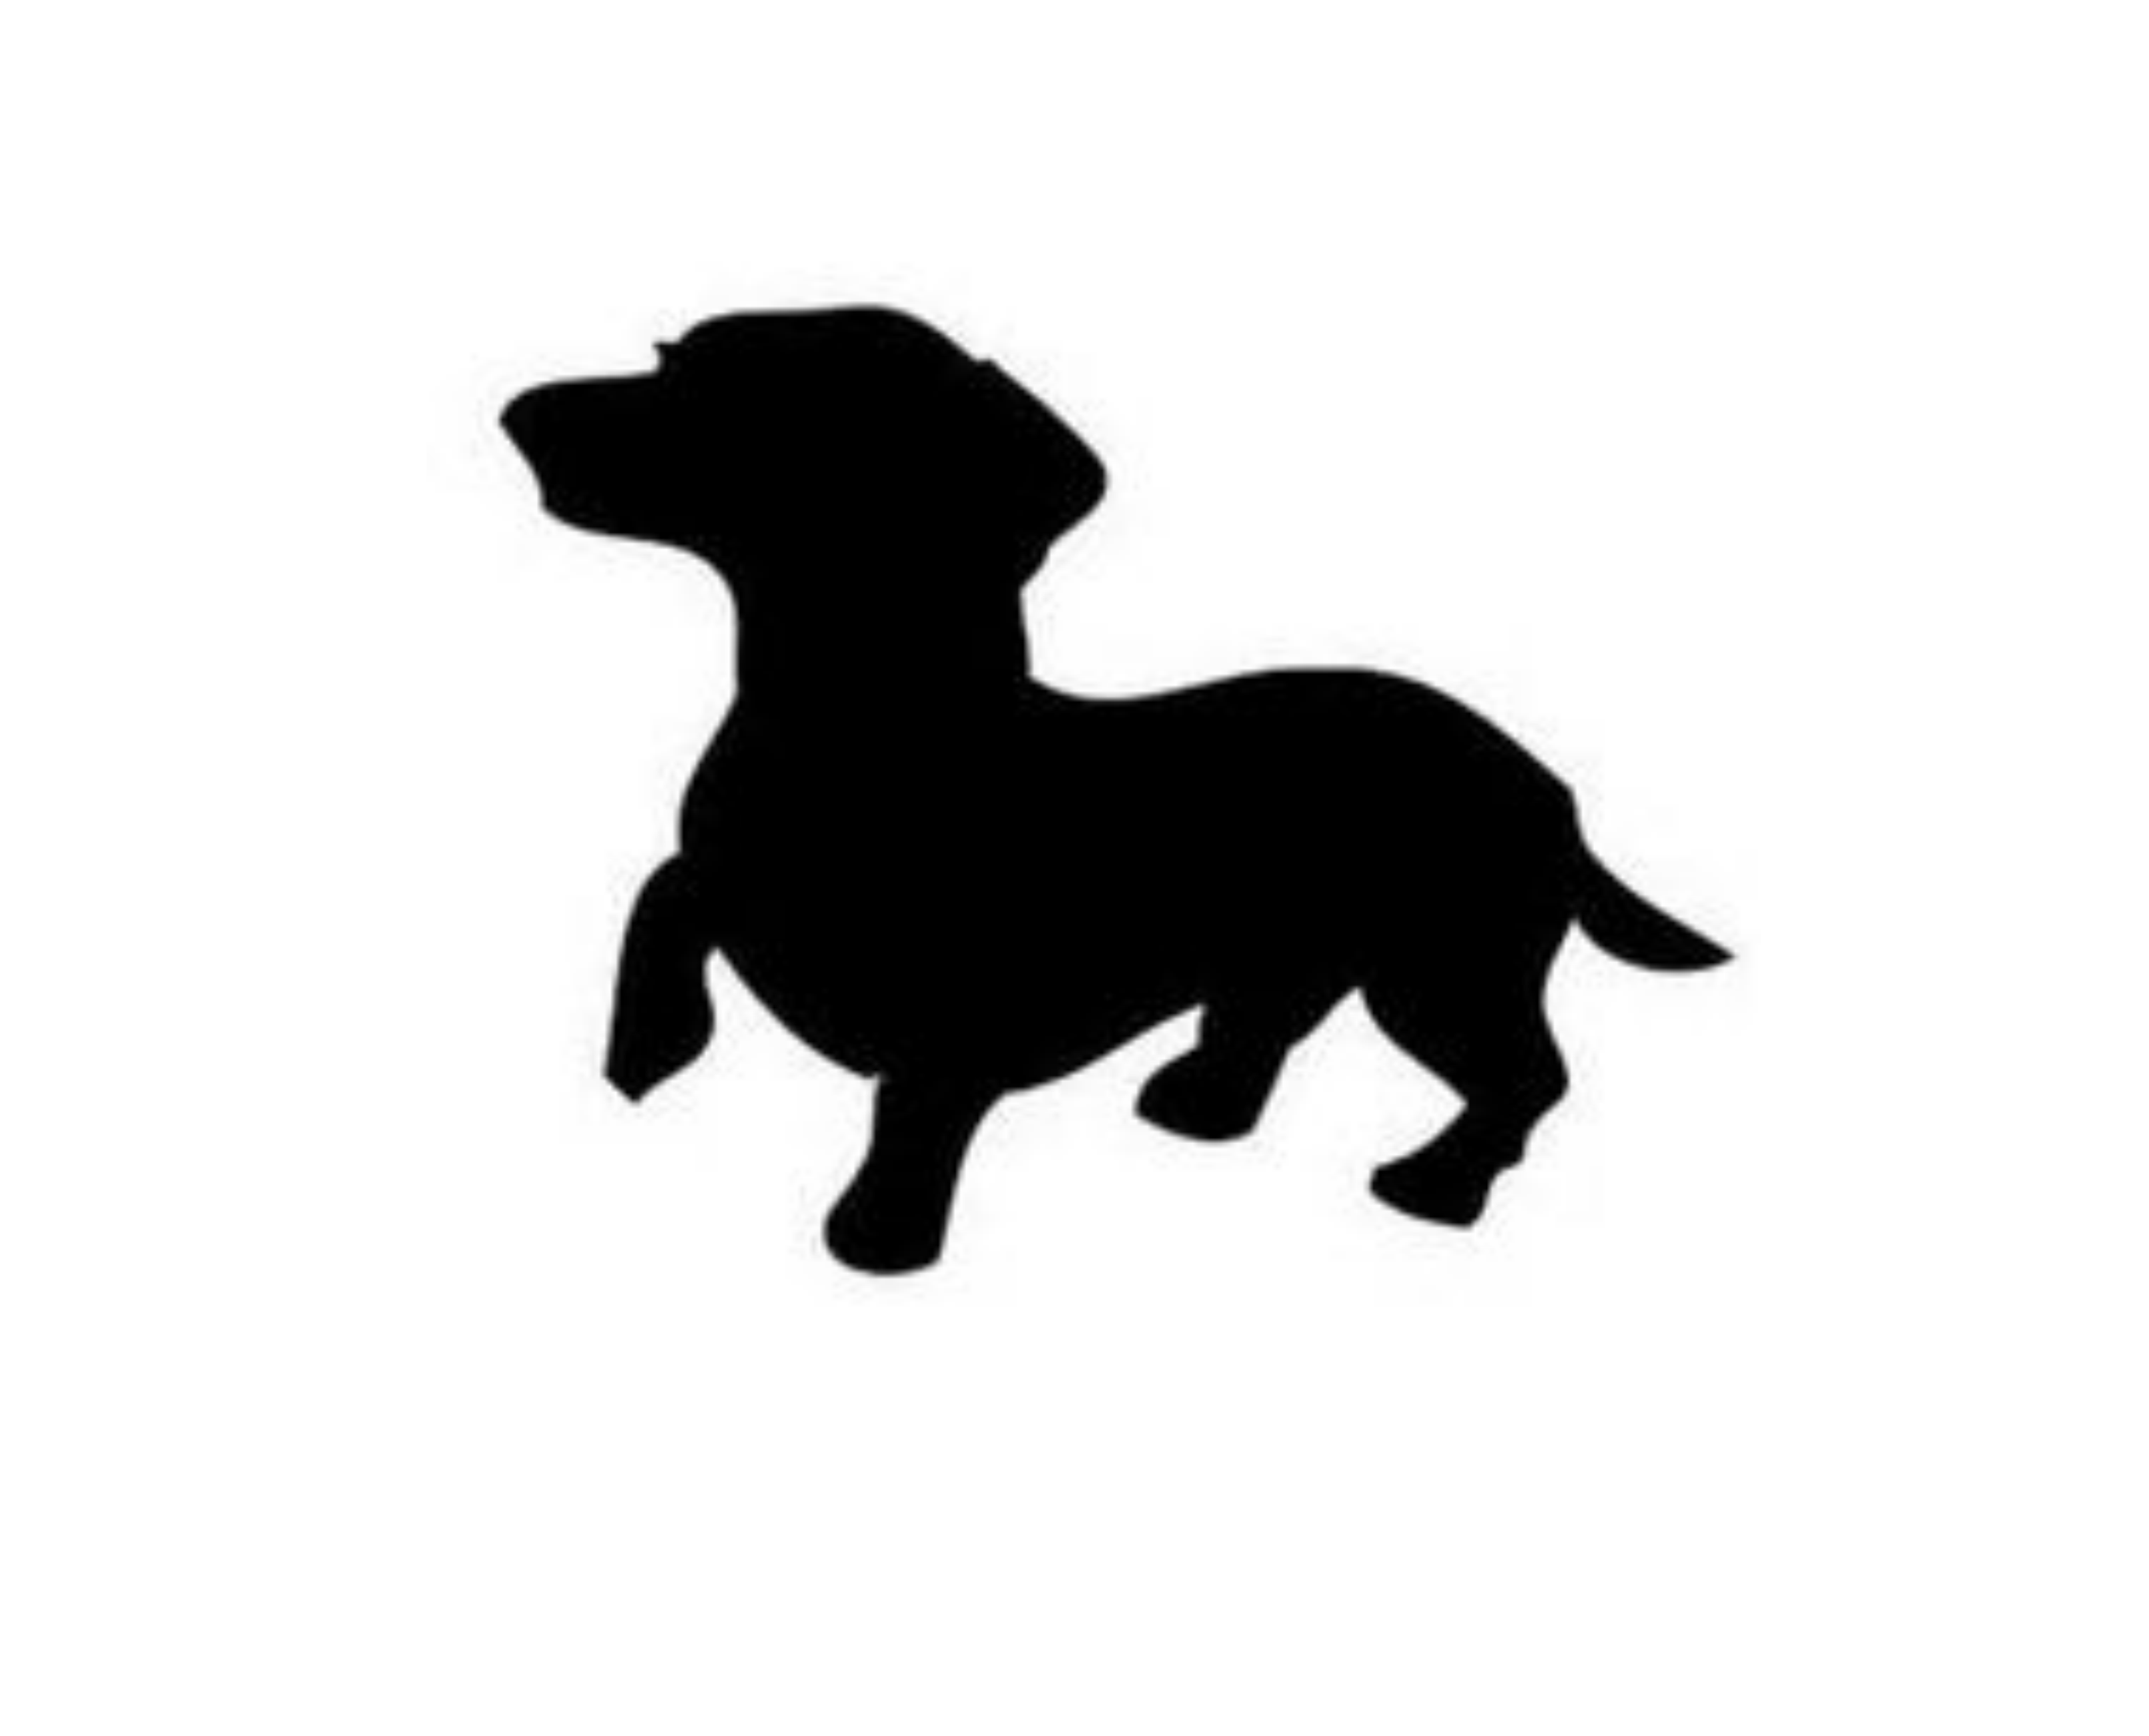 dachshund silhouette clip art love your pet day silhouette clip art animals images [ 3221 x 2602 Pixel ]